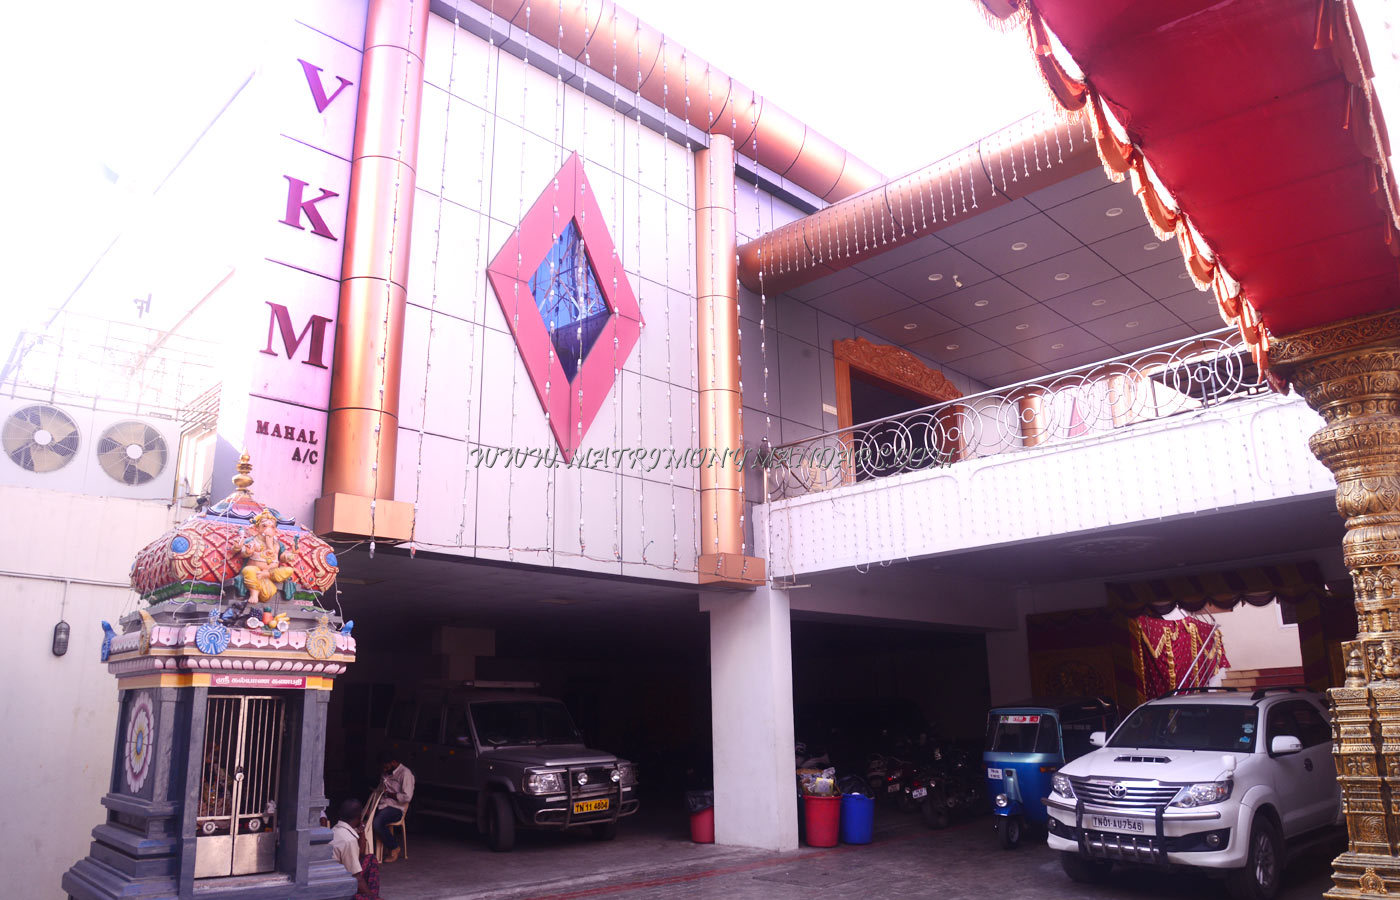 VKM Mahal - Building View